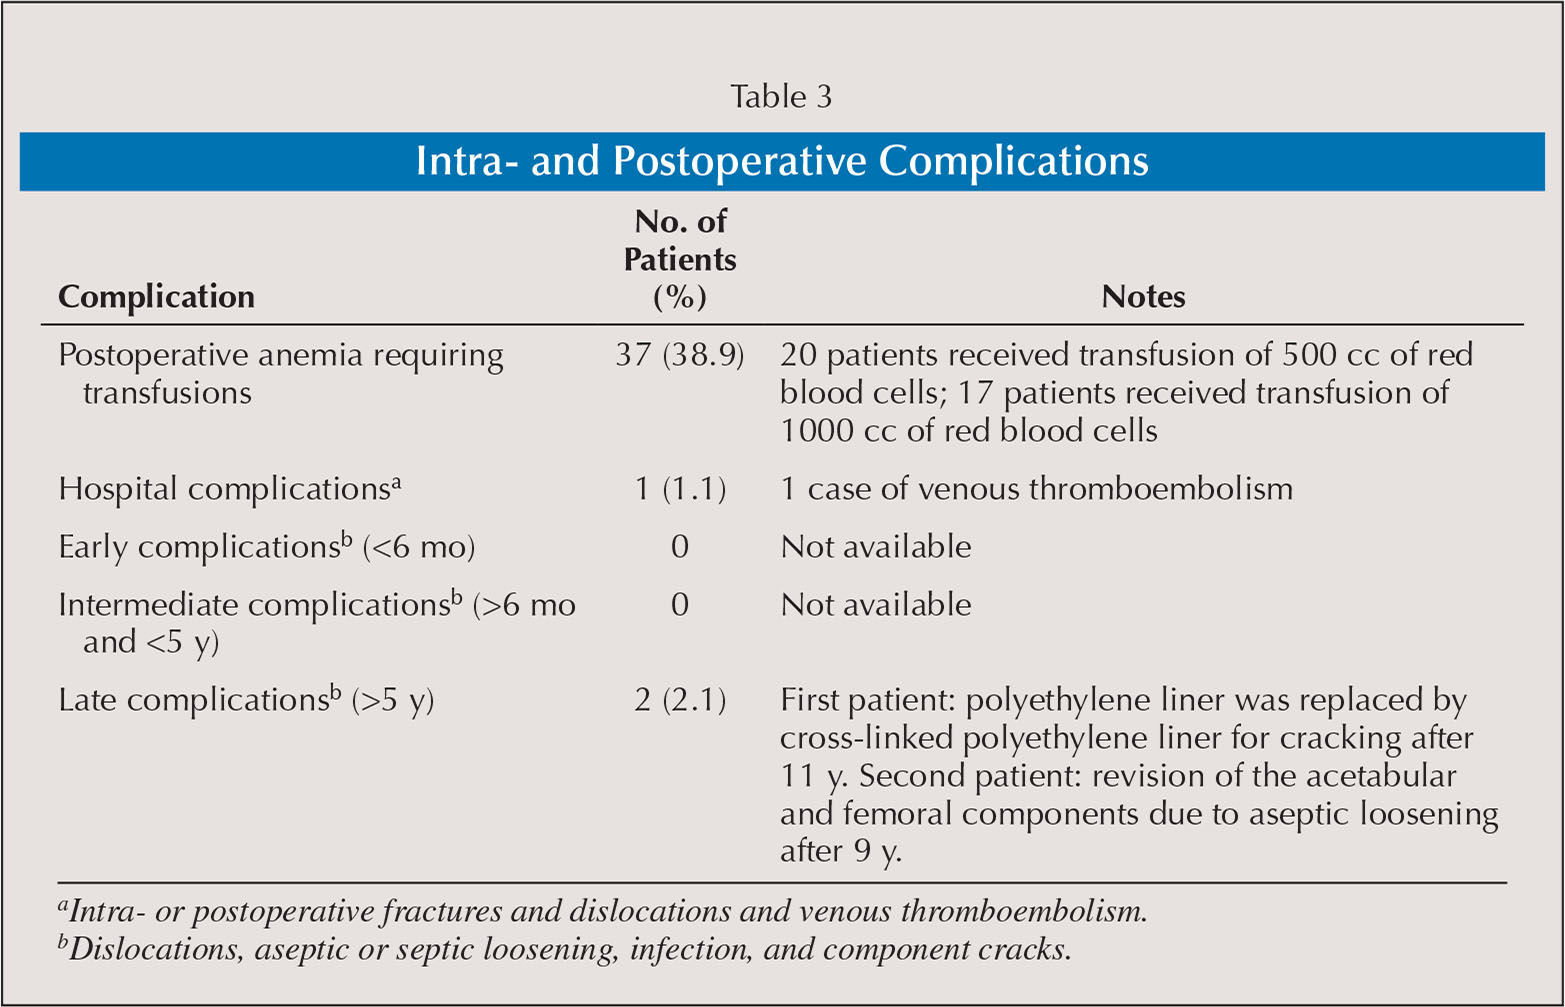 Intra- and Postoperative Complications